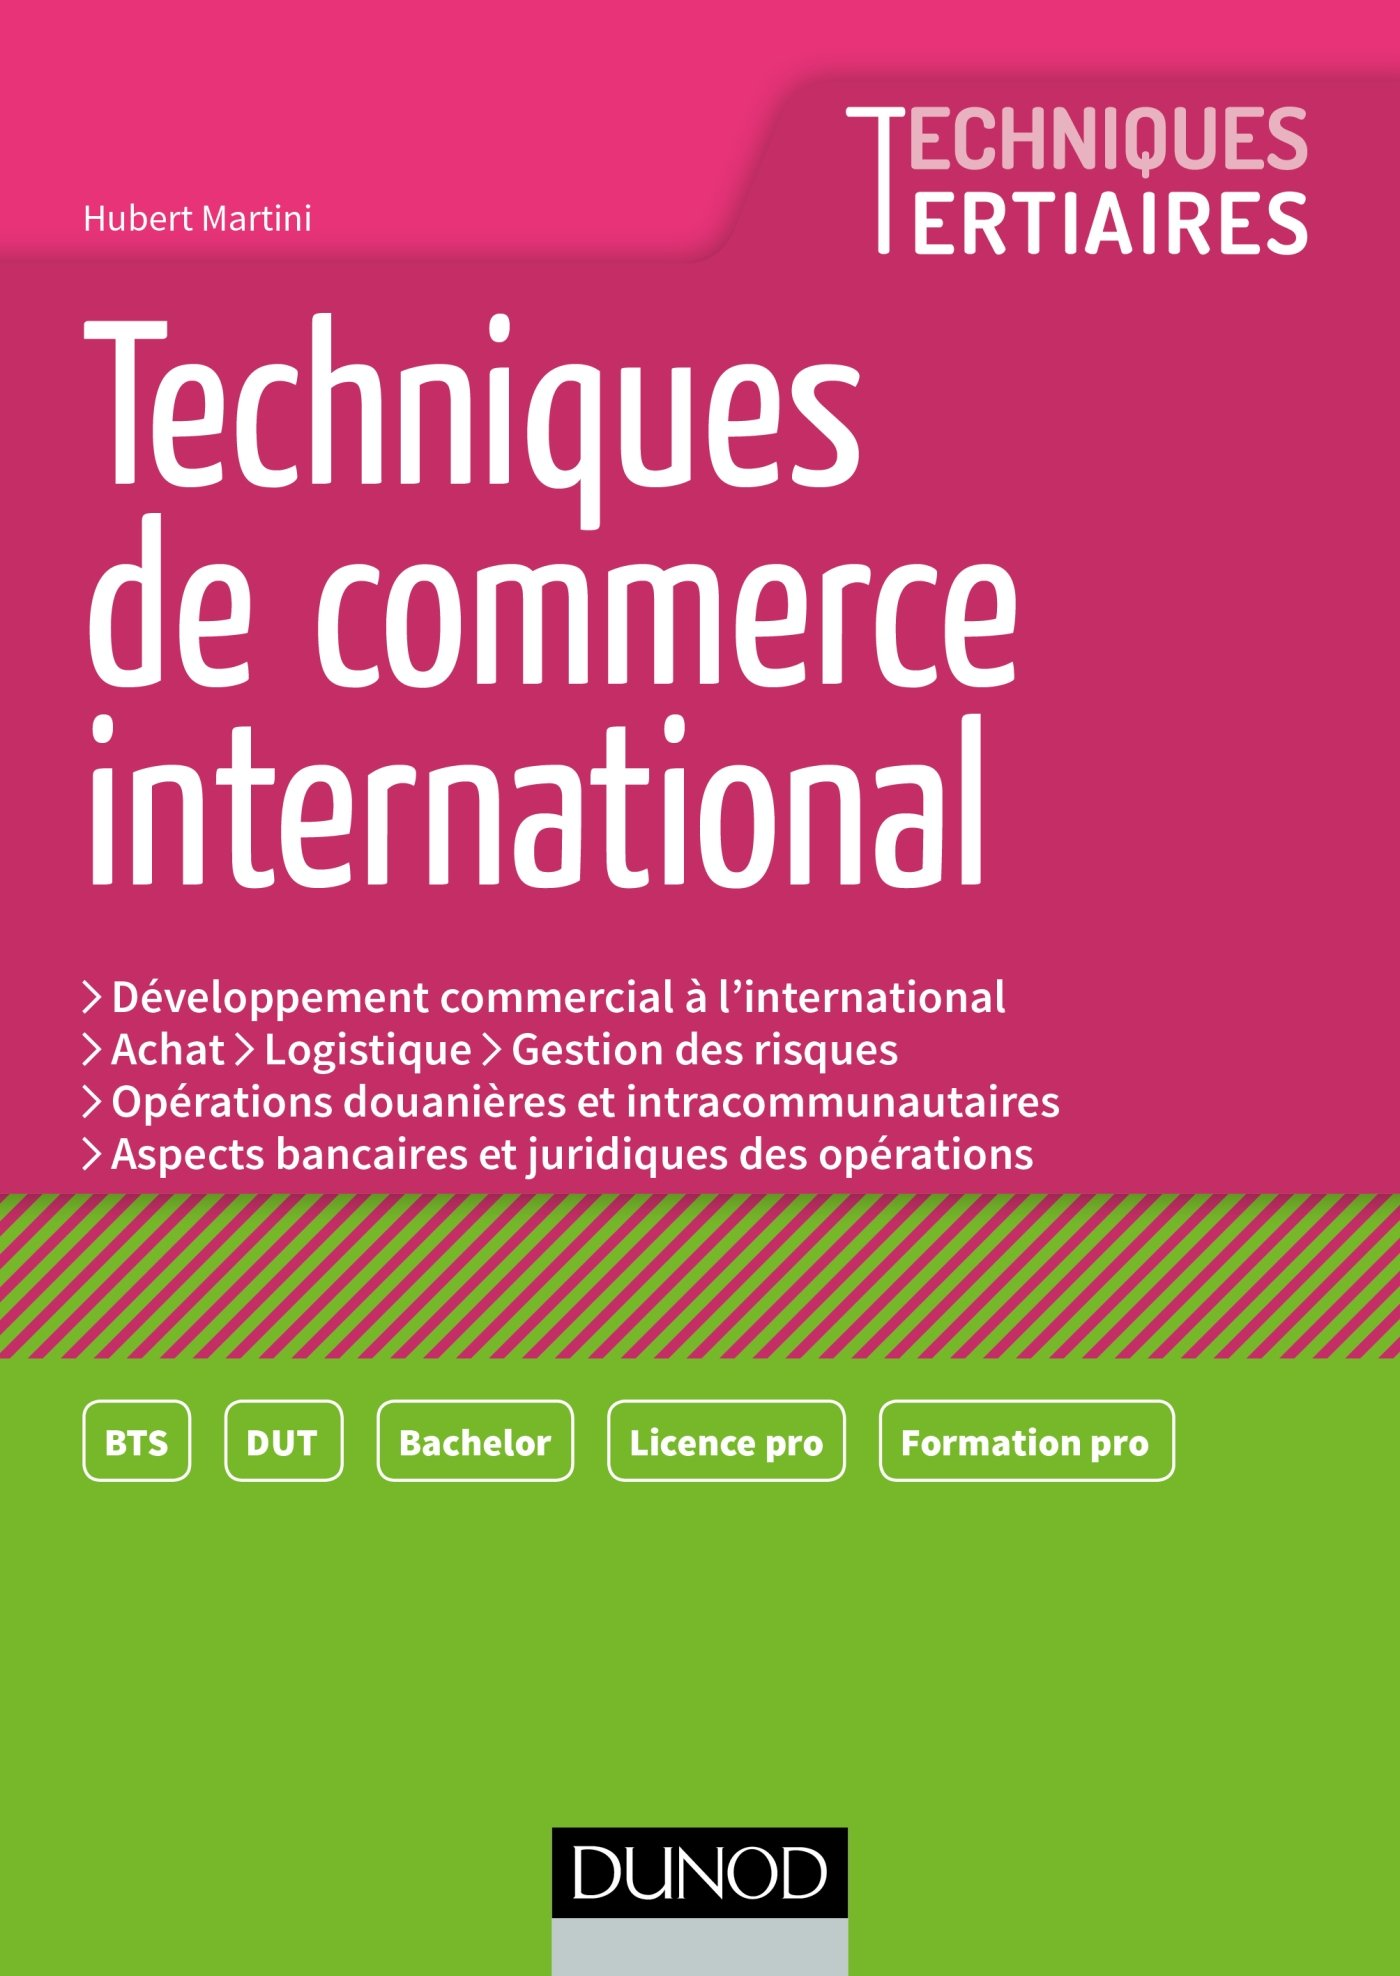 Techniques de Commerce international Broché – 18 octobre 2017 Hubert Martini Dunod 210073766X BTS